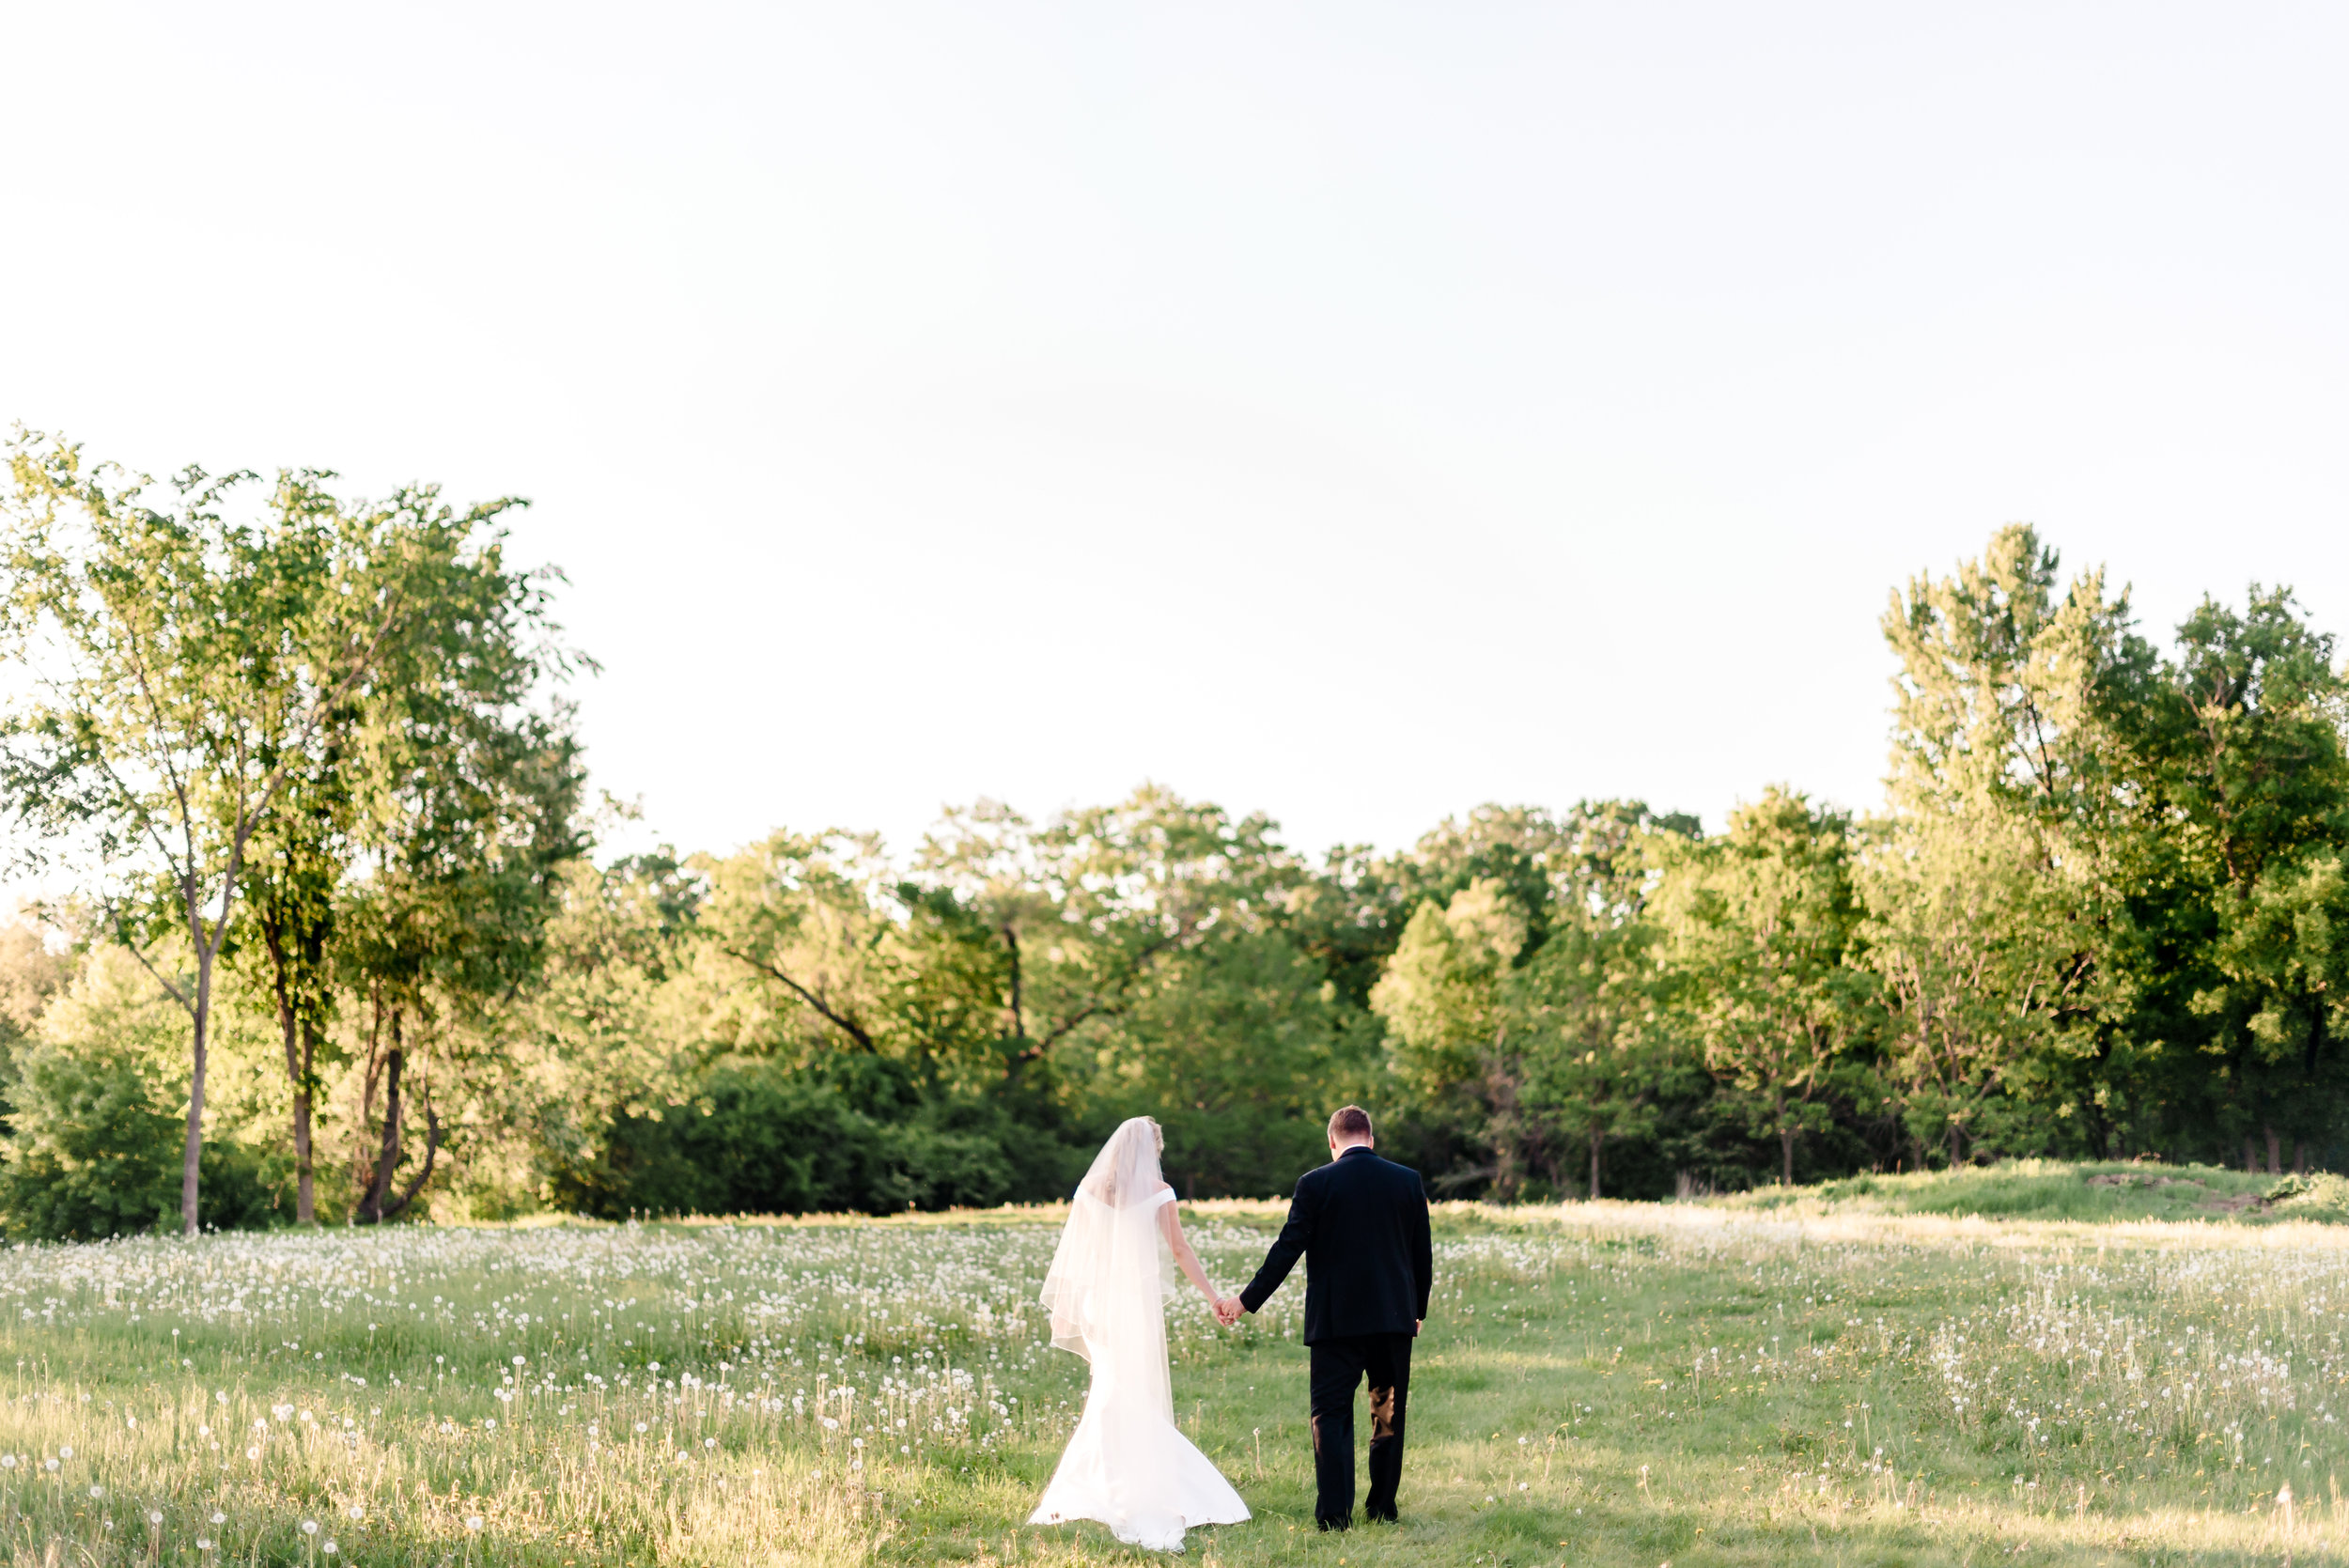 Romantic Sunset Wedding Photos in MN - Historic John P Furber Farm Wedding - Luxury Wedding Photographer MN